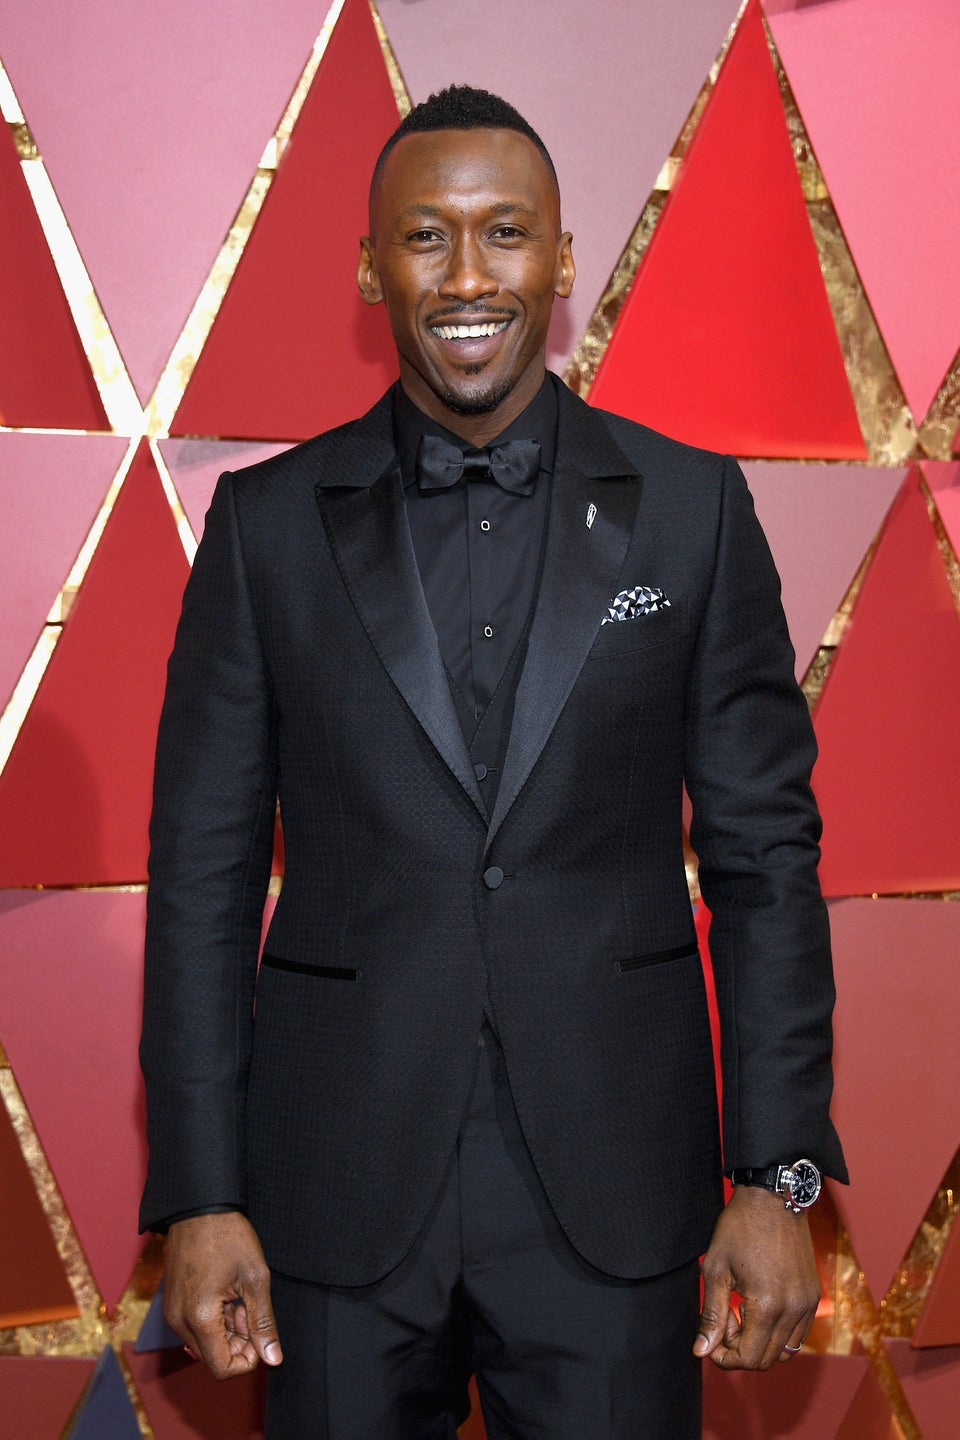 'Moonlight' Star Mahershala Ali Takes Home Oscar Gold For Best Supporting Actor